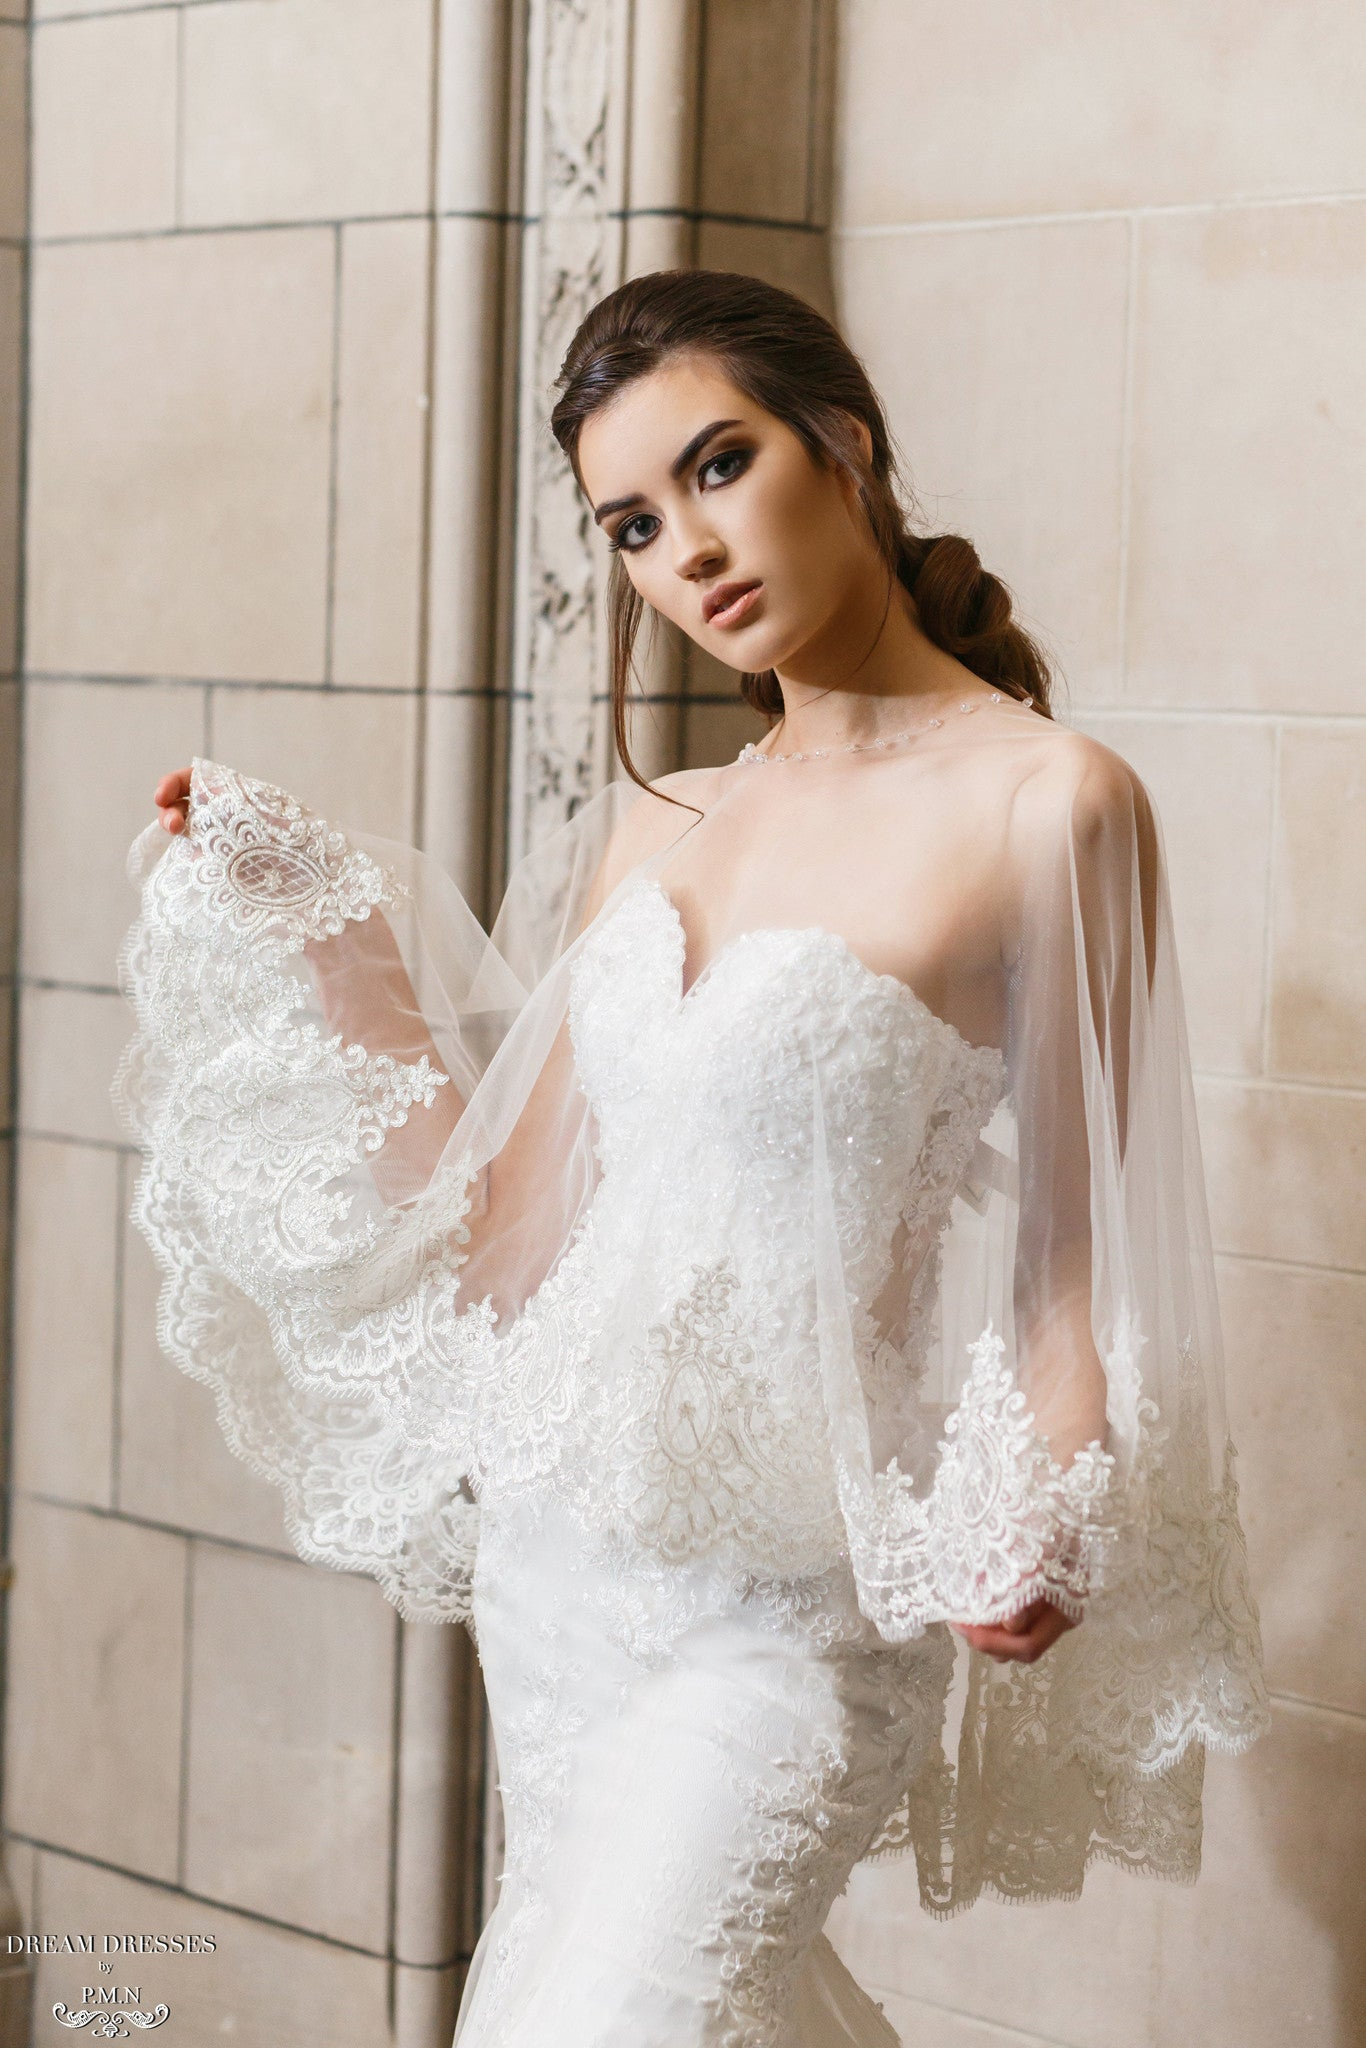 Lace Bridal Cape (#Léonie) - Dream Dresses by P.M.N  - 2